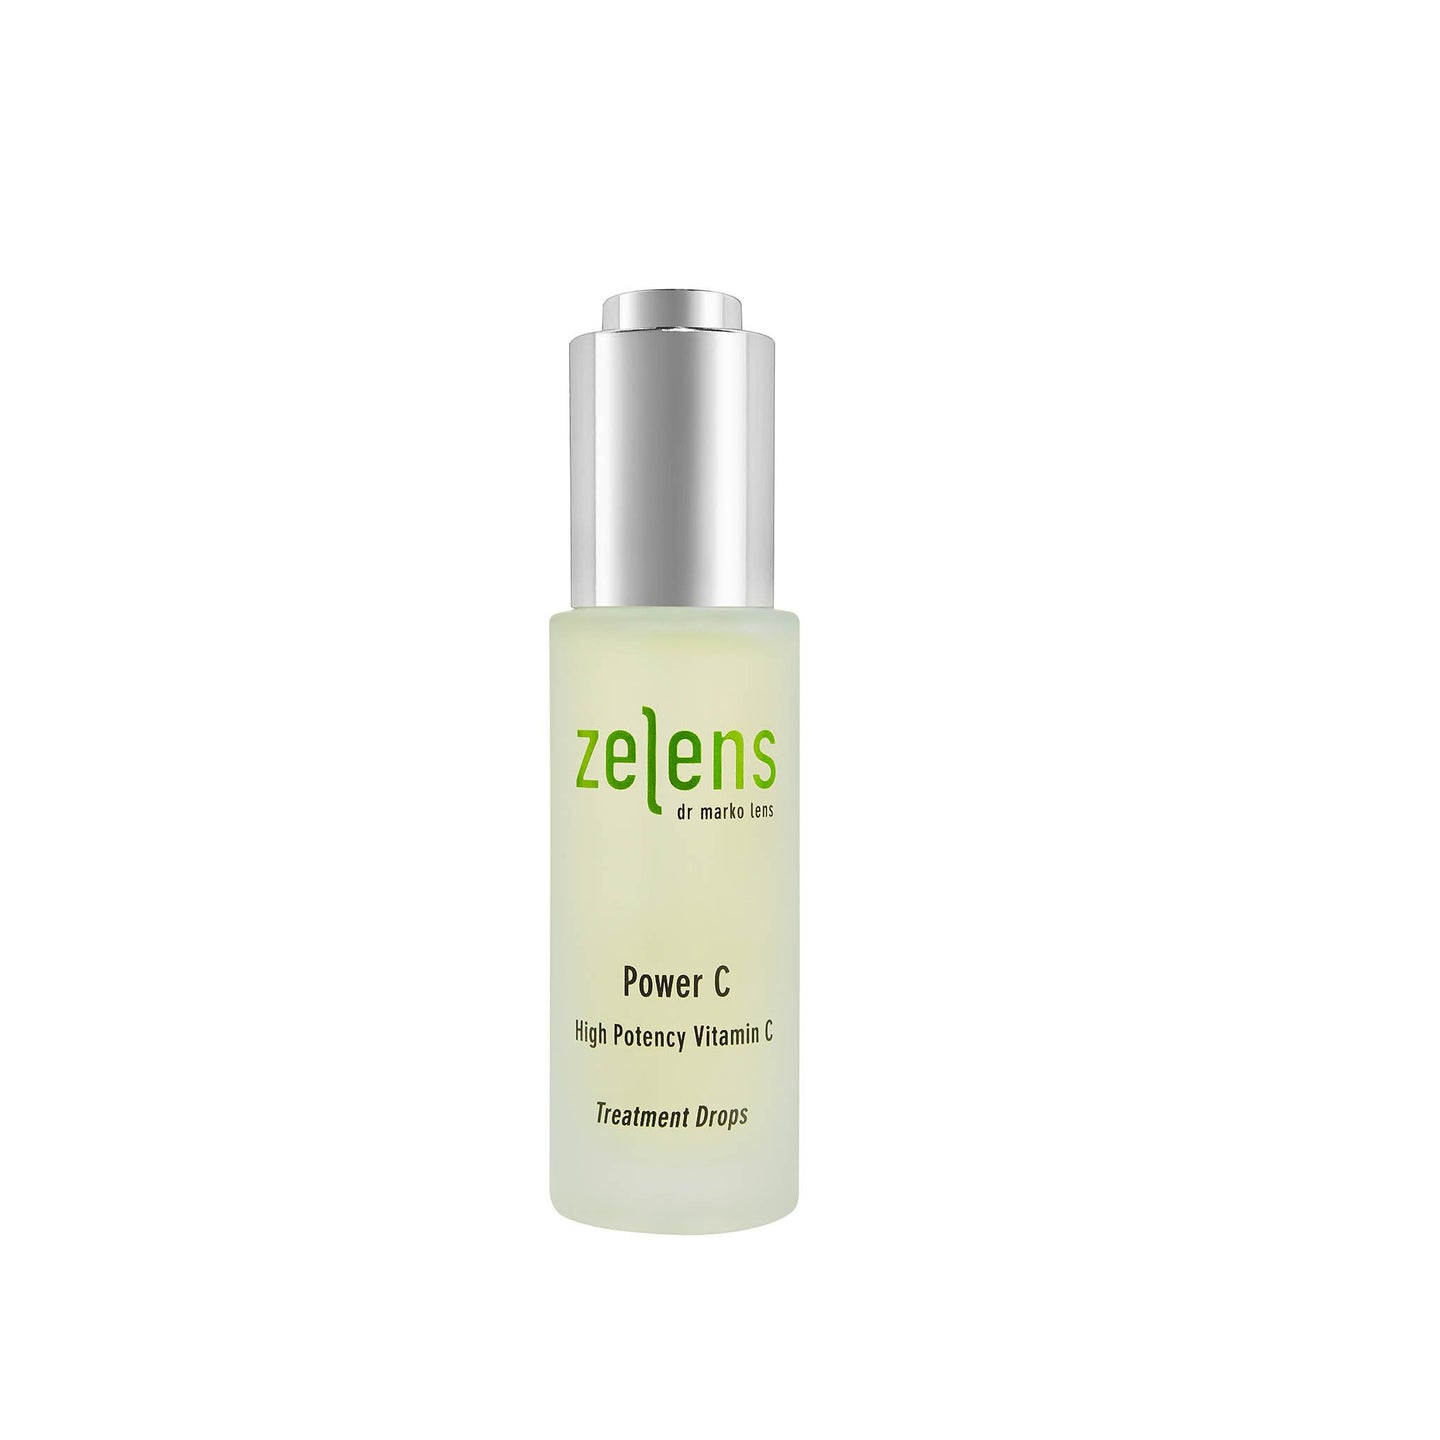 Zelens Power C Treatment Drops